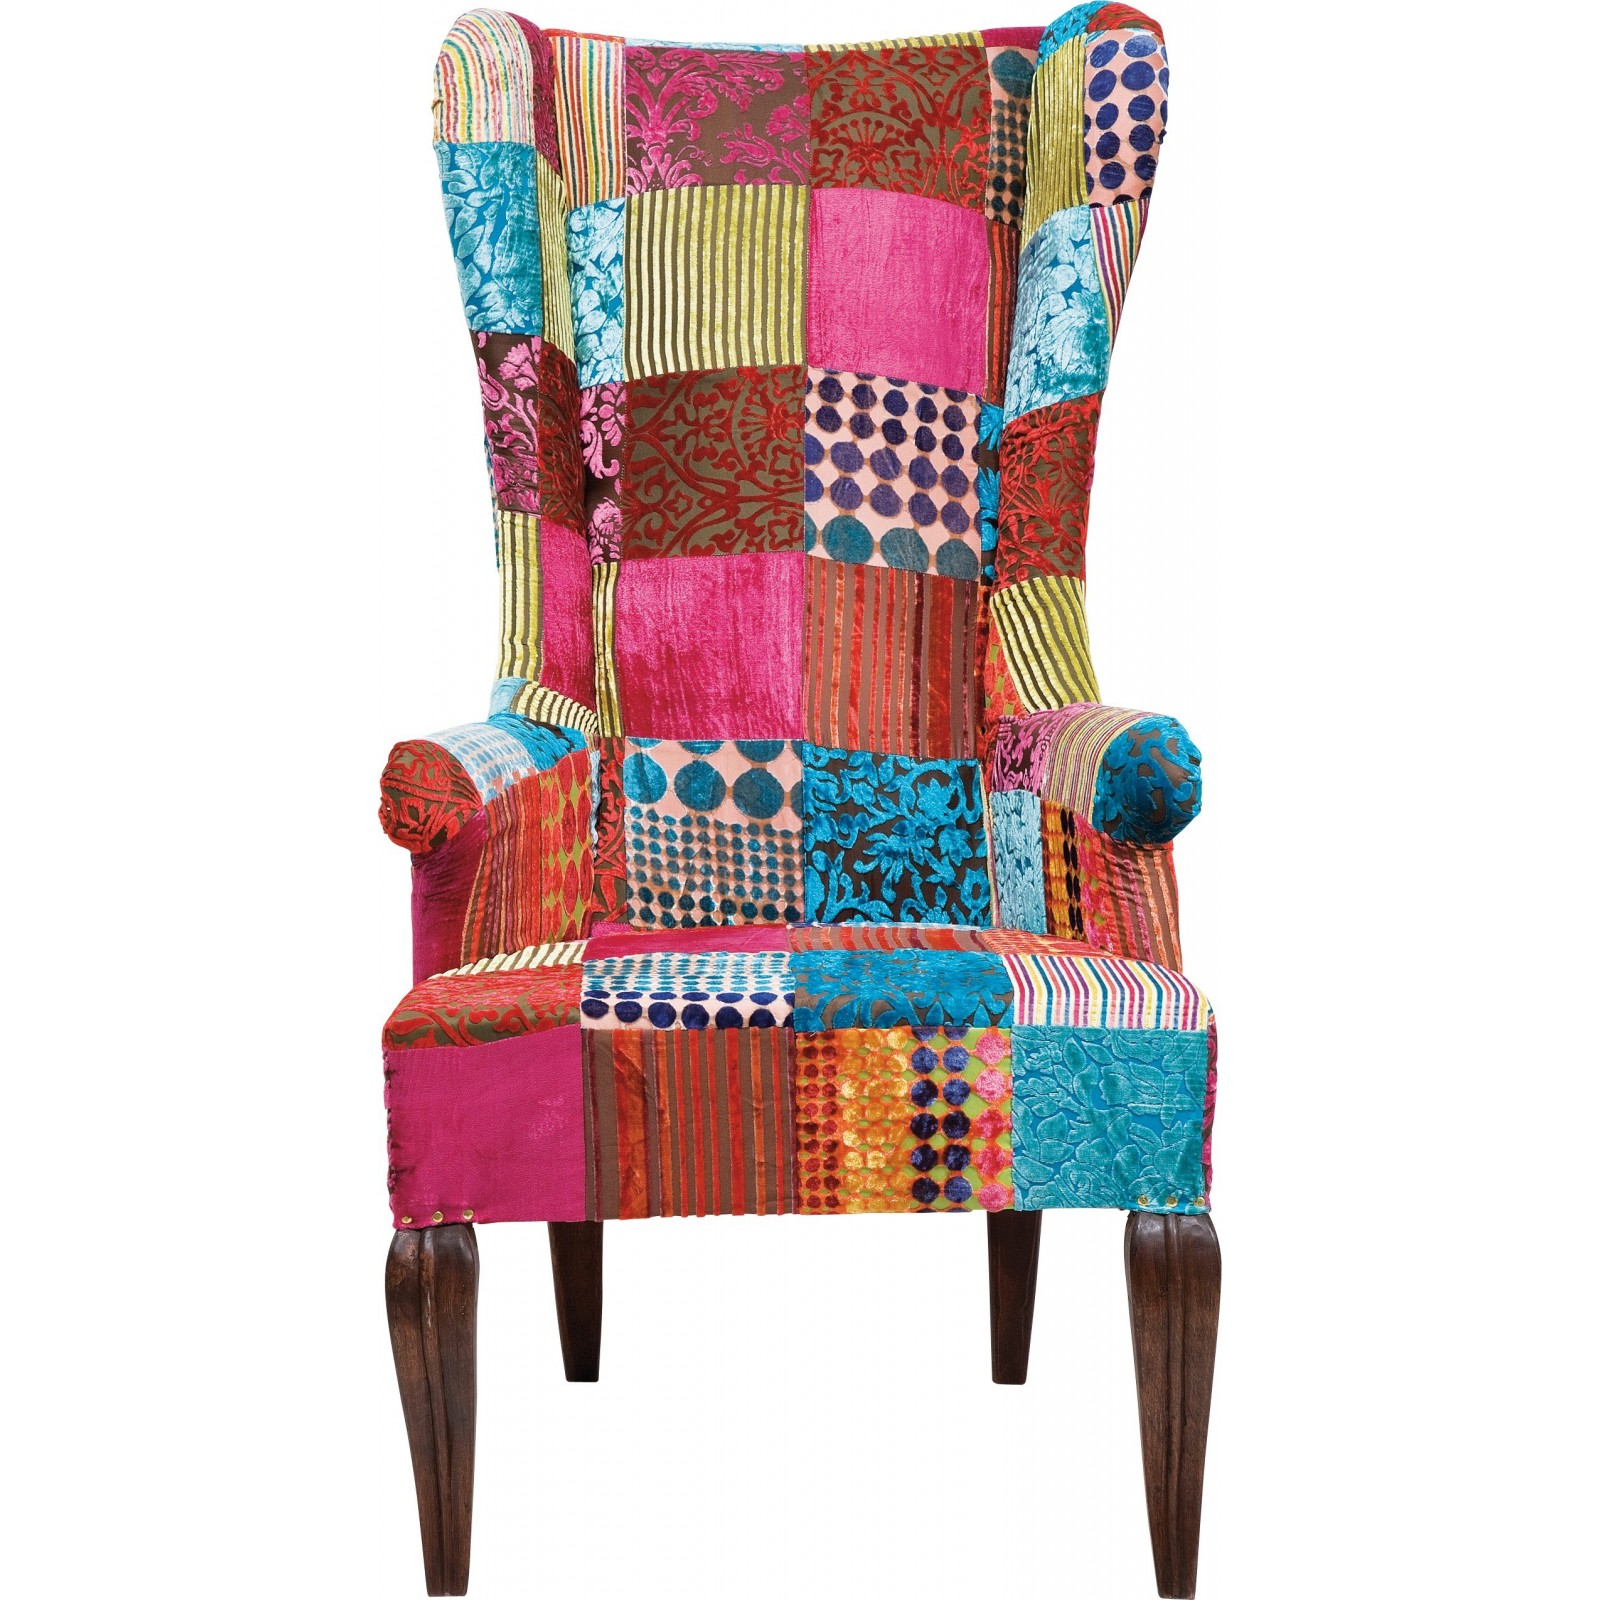 Fauteuil Traditionnel En Velours Multicolore Patchwork